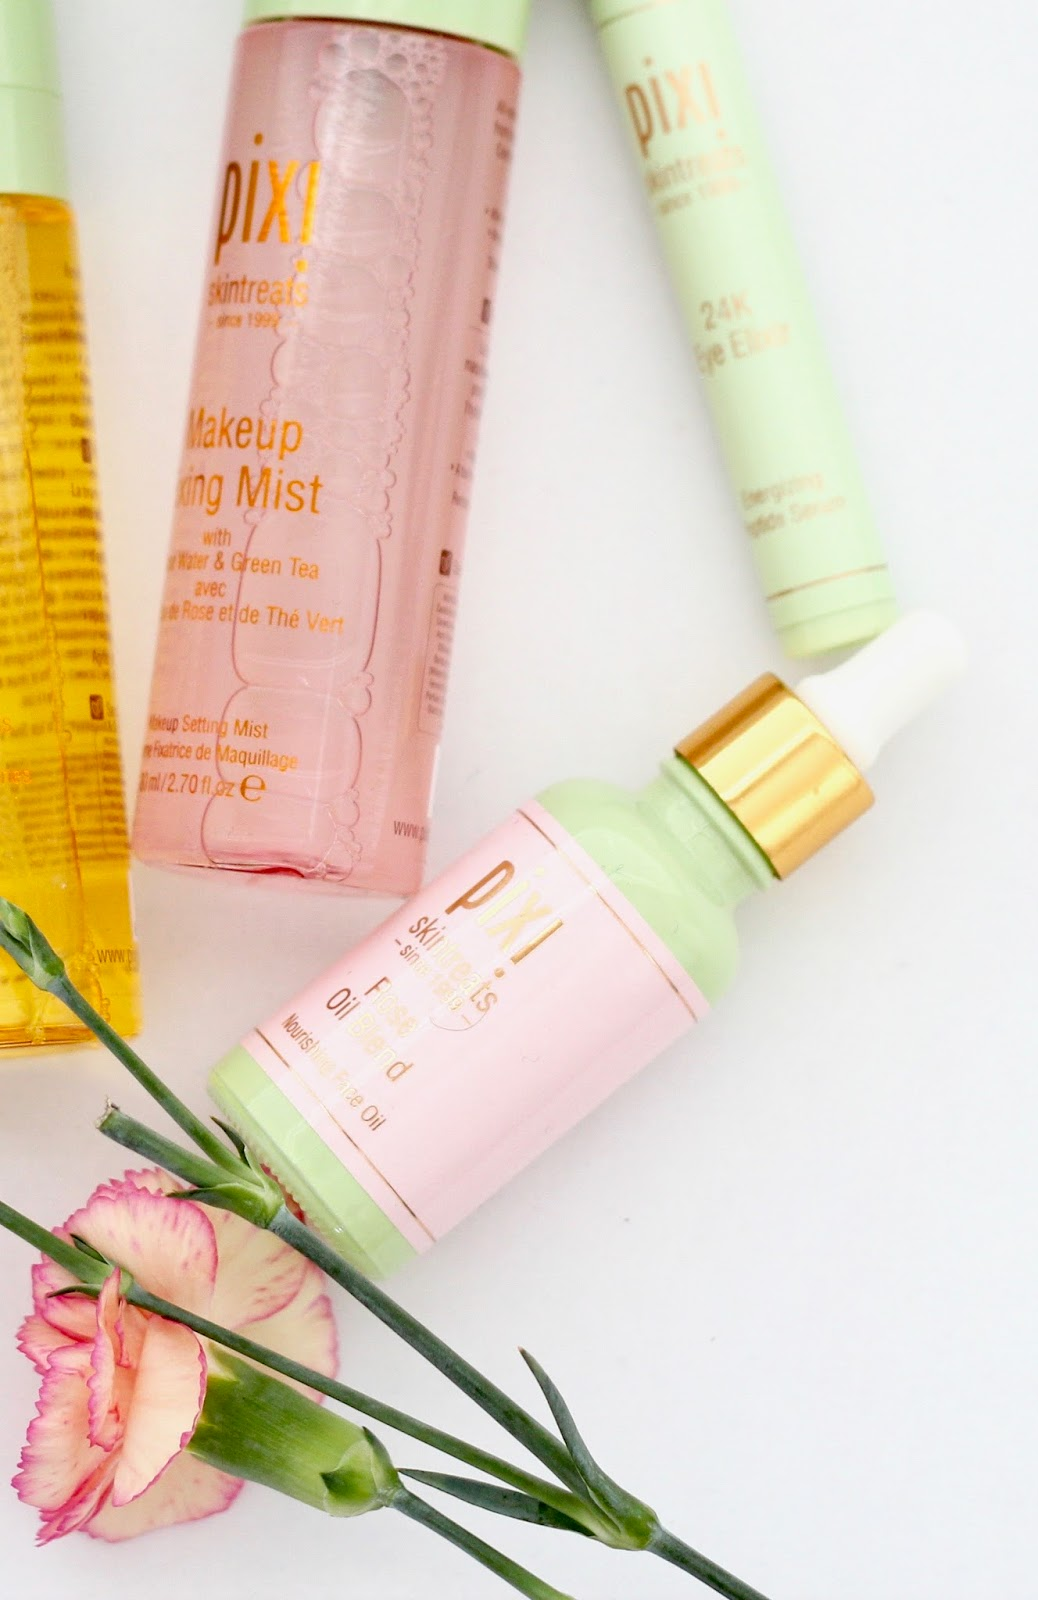 pixi by petra products now available in canada